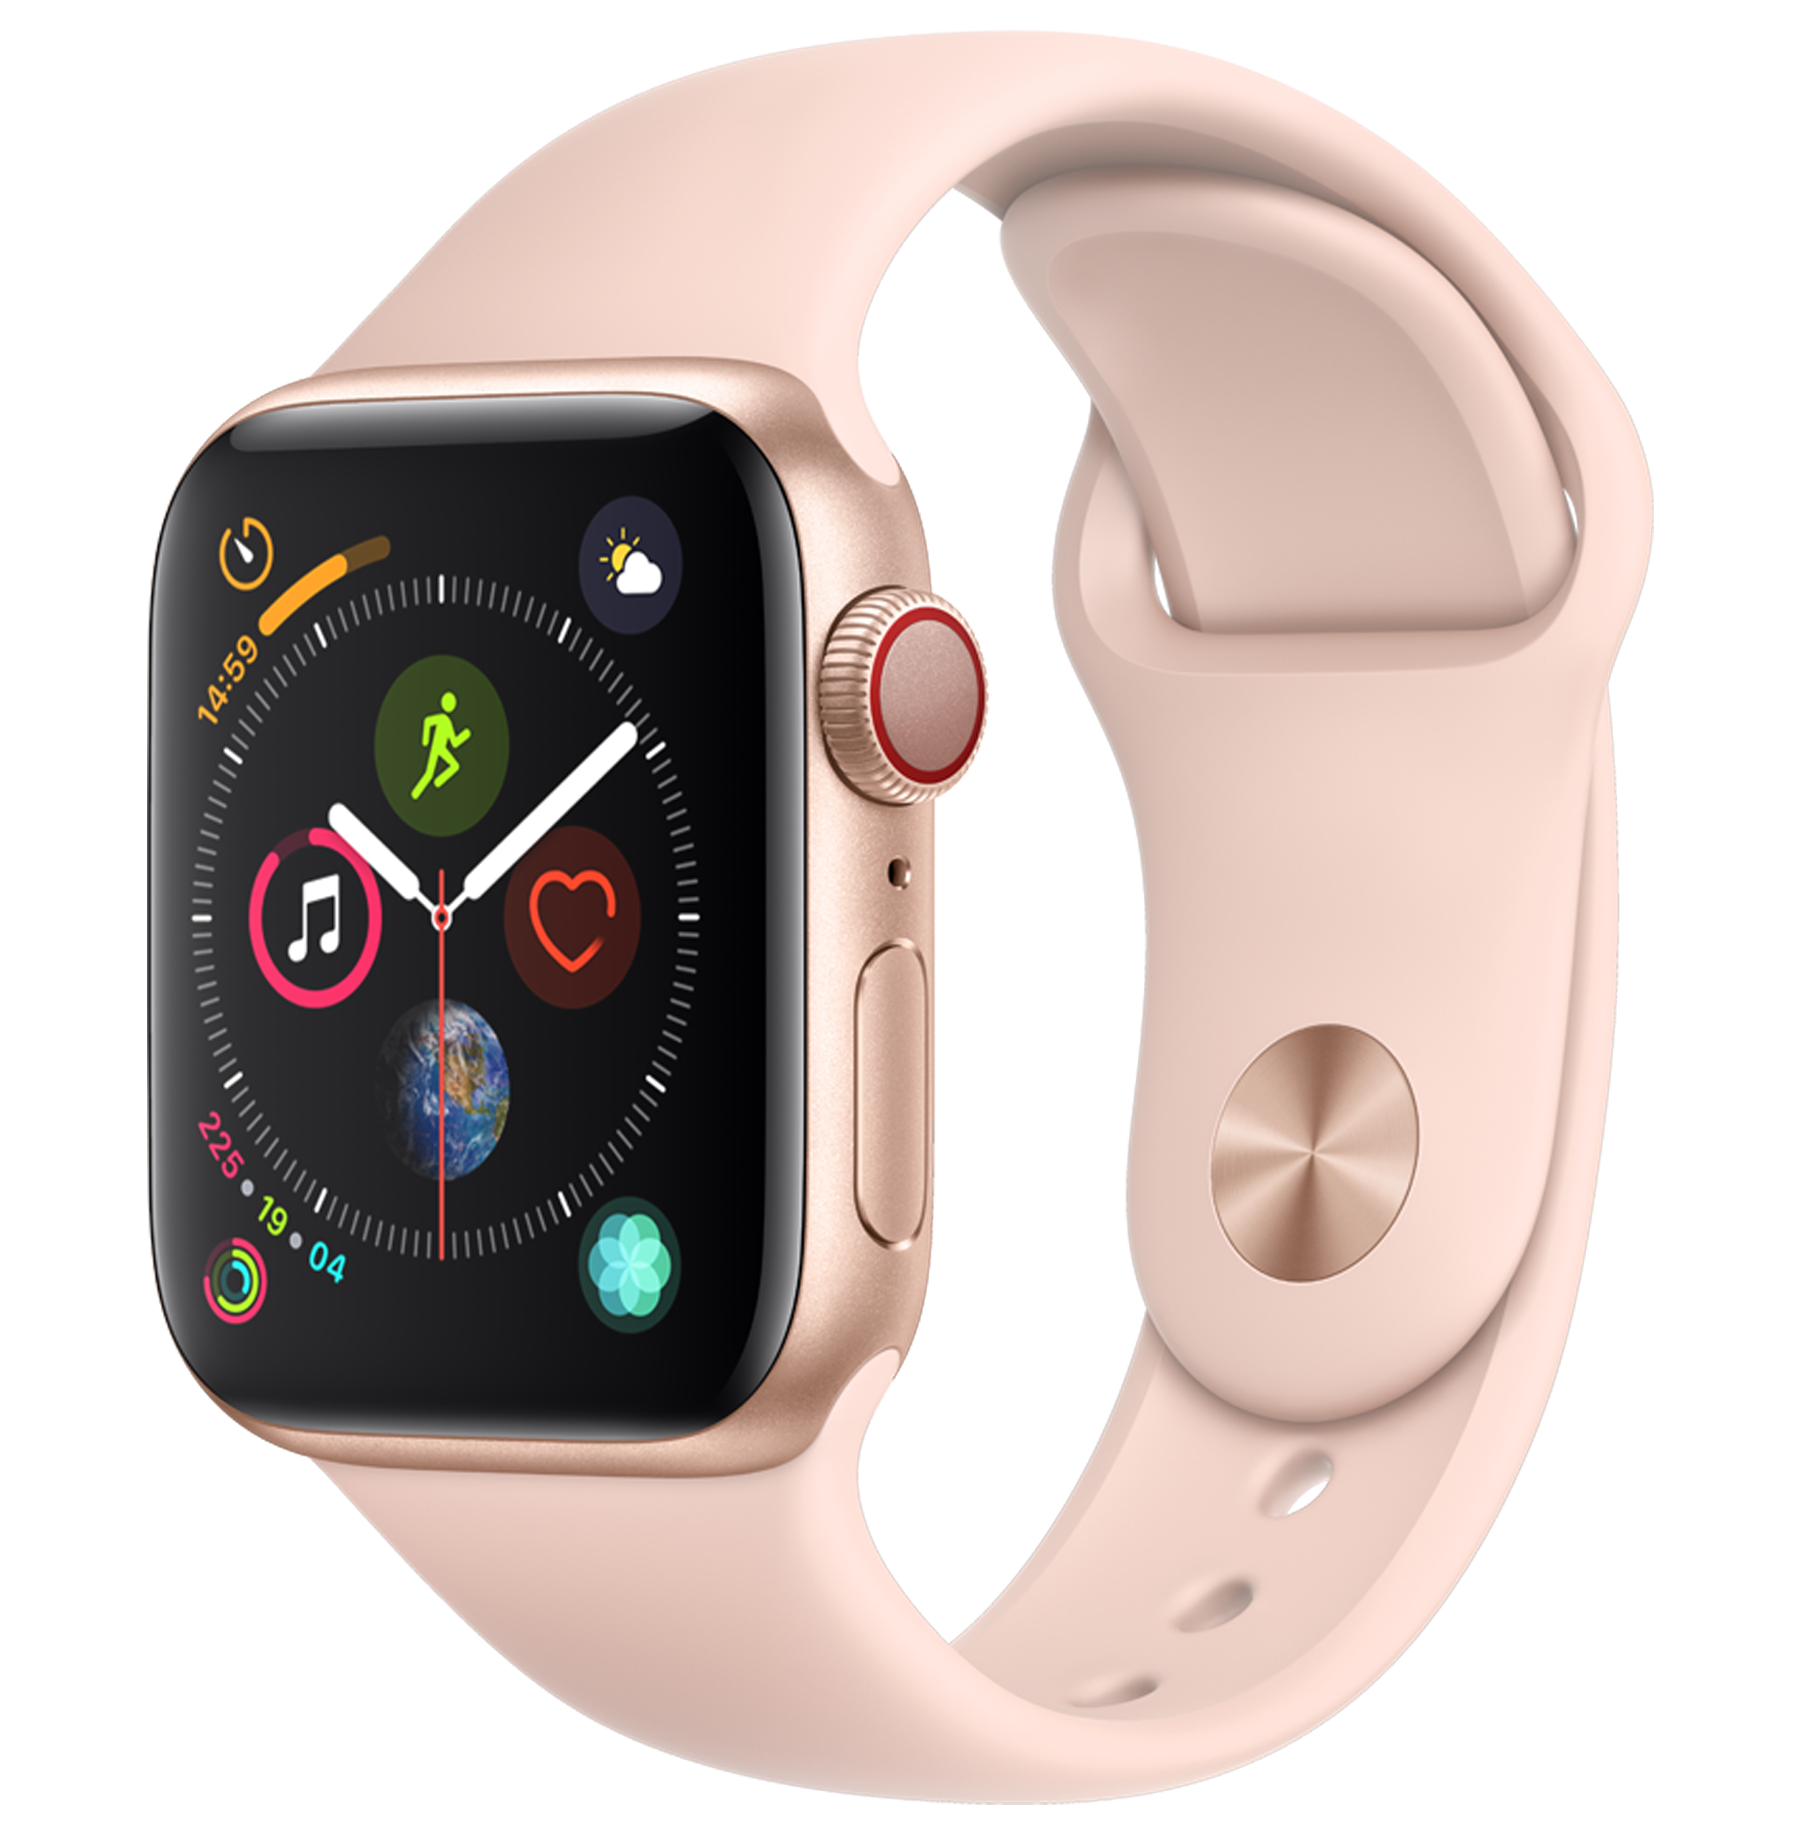 A front view of the Apple Watch Series 4 in Gold.